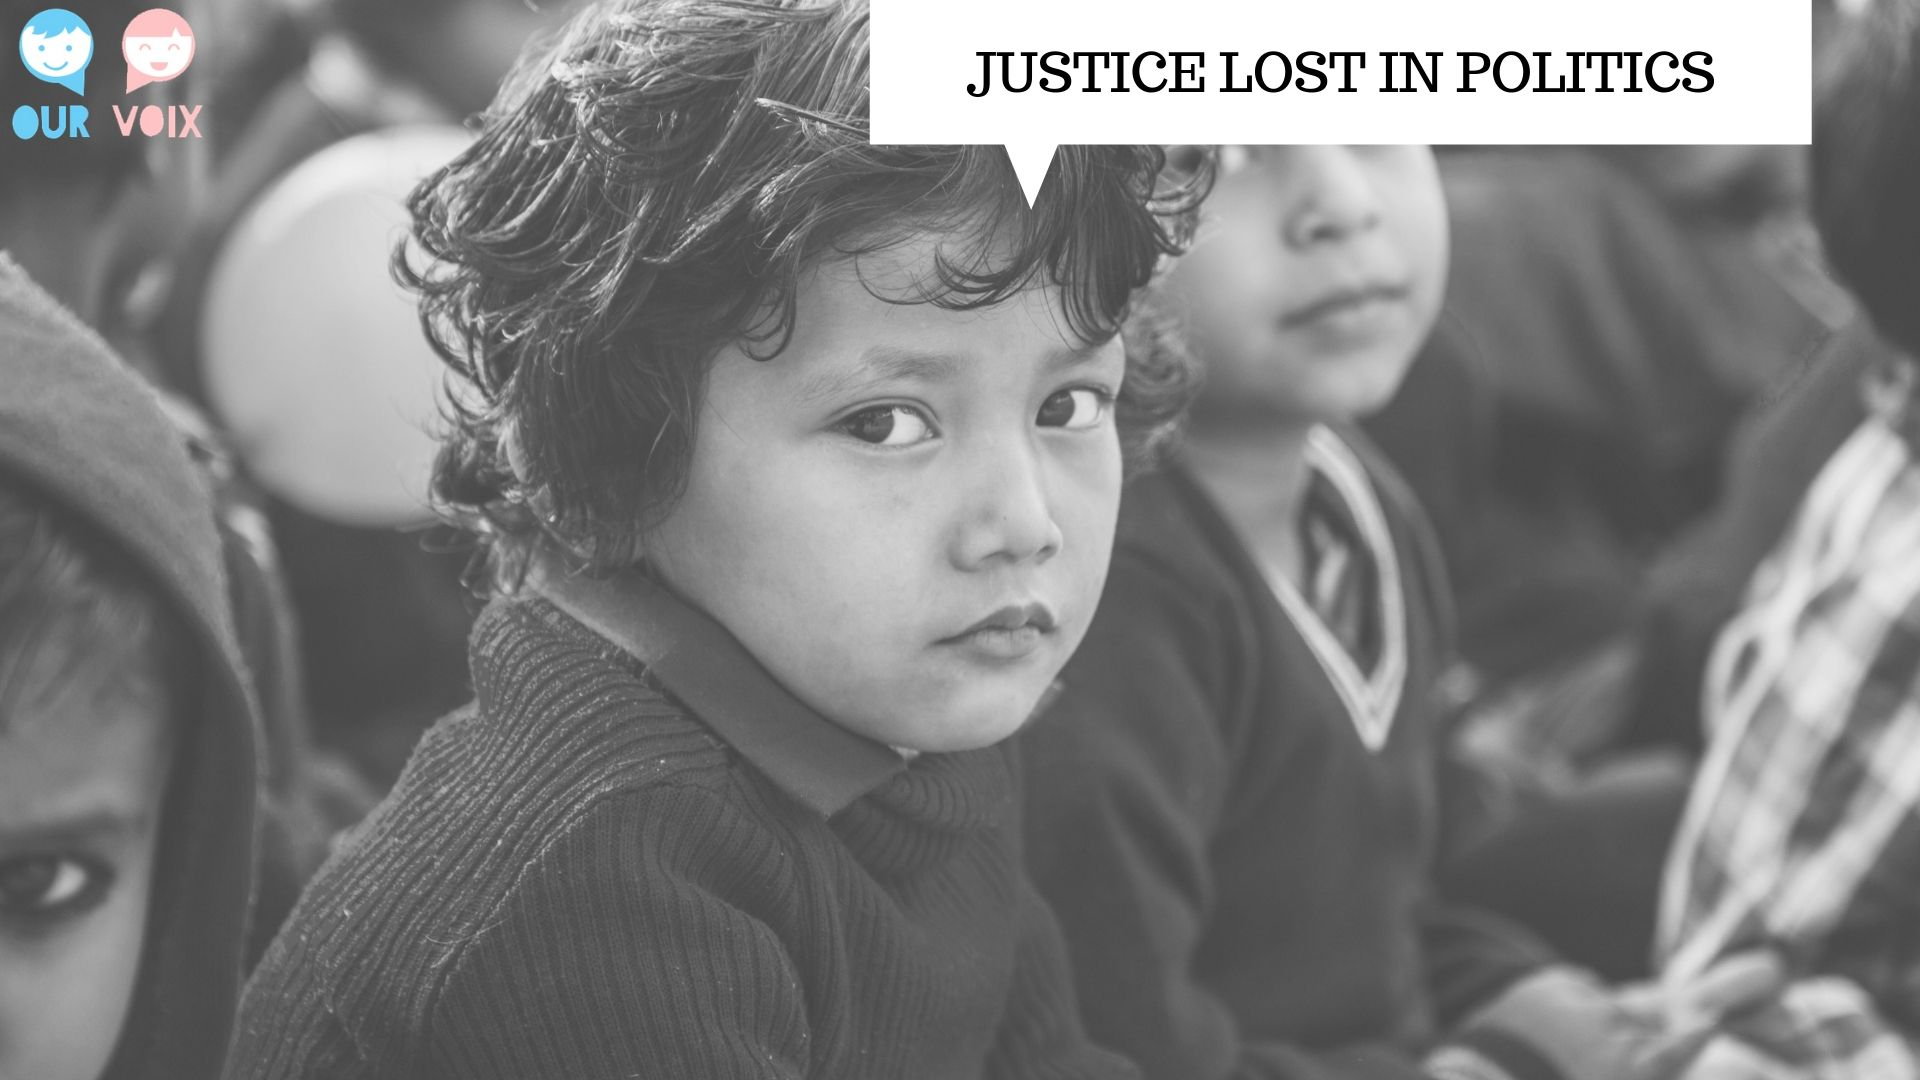 DELHI NGO BREAKING THE BUBBLE OF SILENCE ON CHILD SEXUAL ABUSE